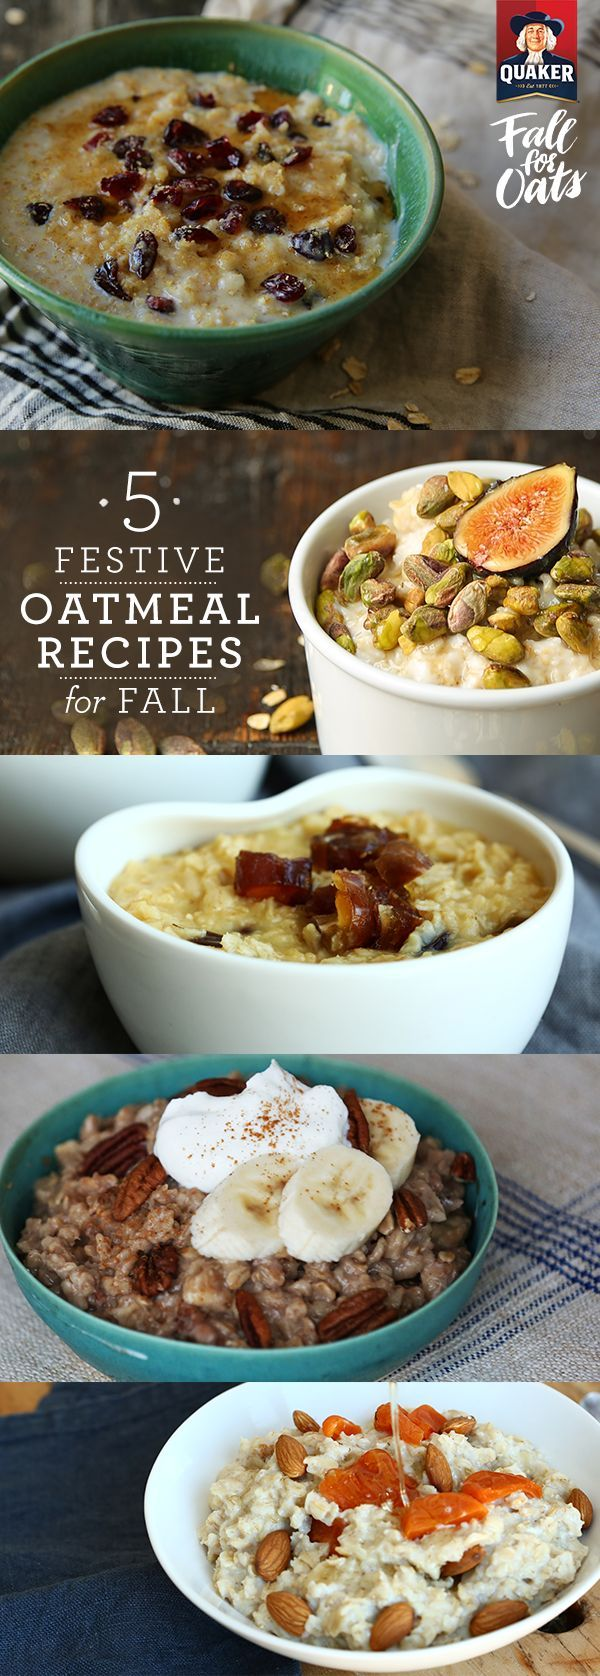 Top your Quaker® oatmeal with walnuts, figs, even maple syrup in the morning for a delicious, festive Fall breakfast. Just grab a spoon, and you're ready to take on the day.